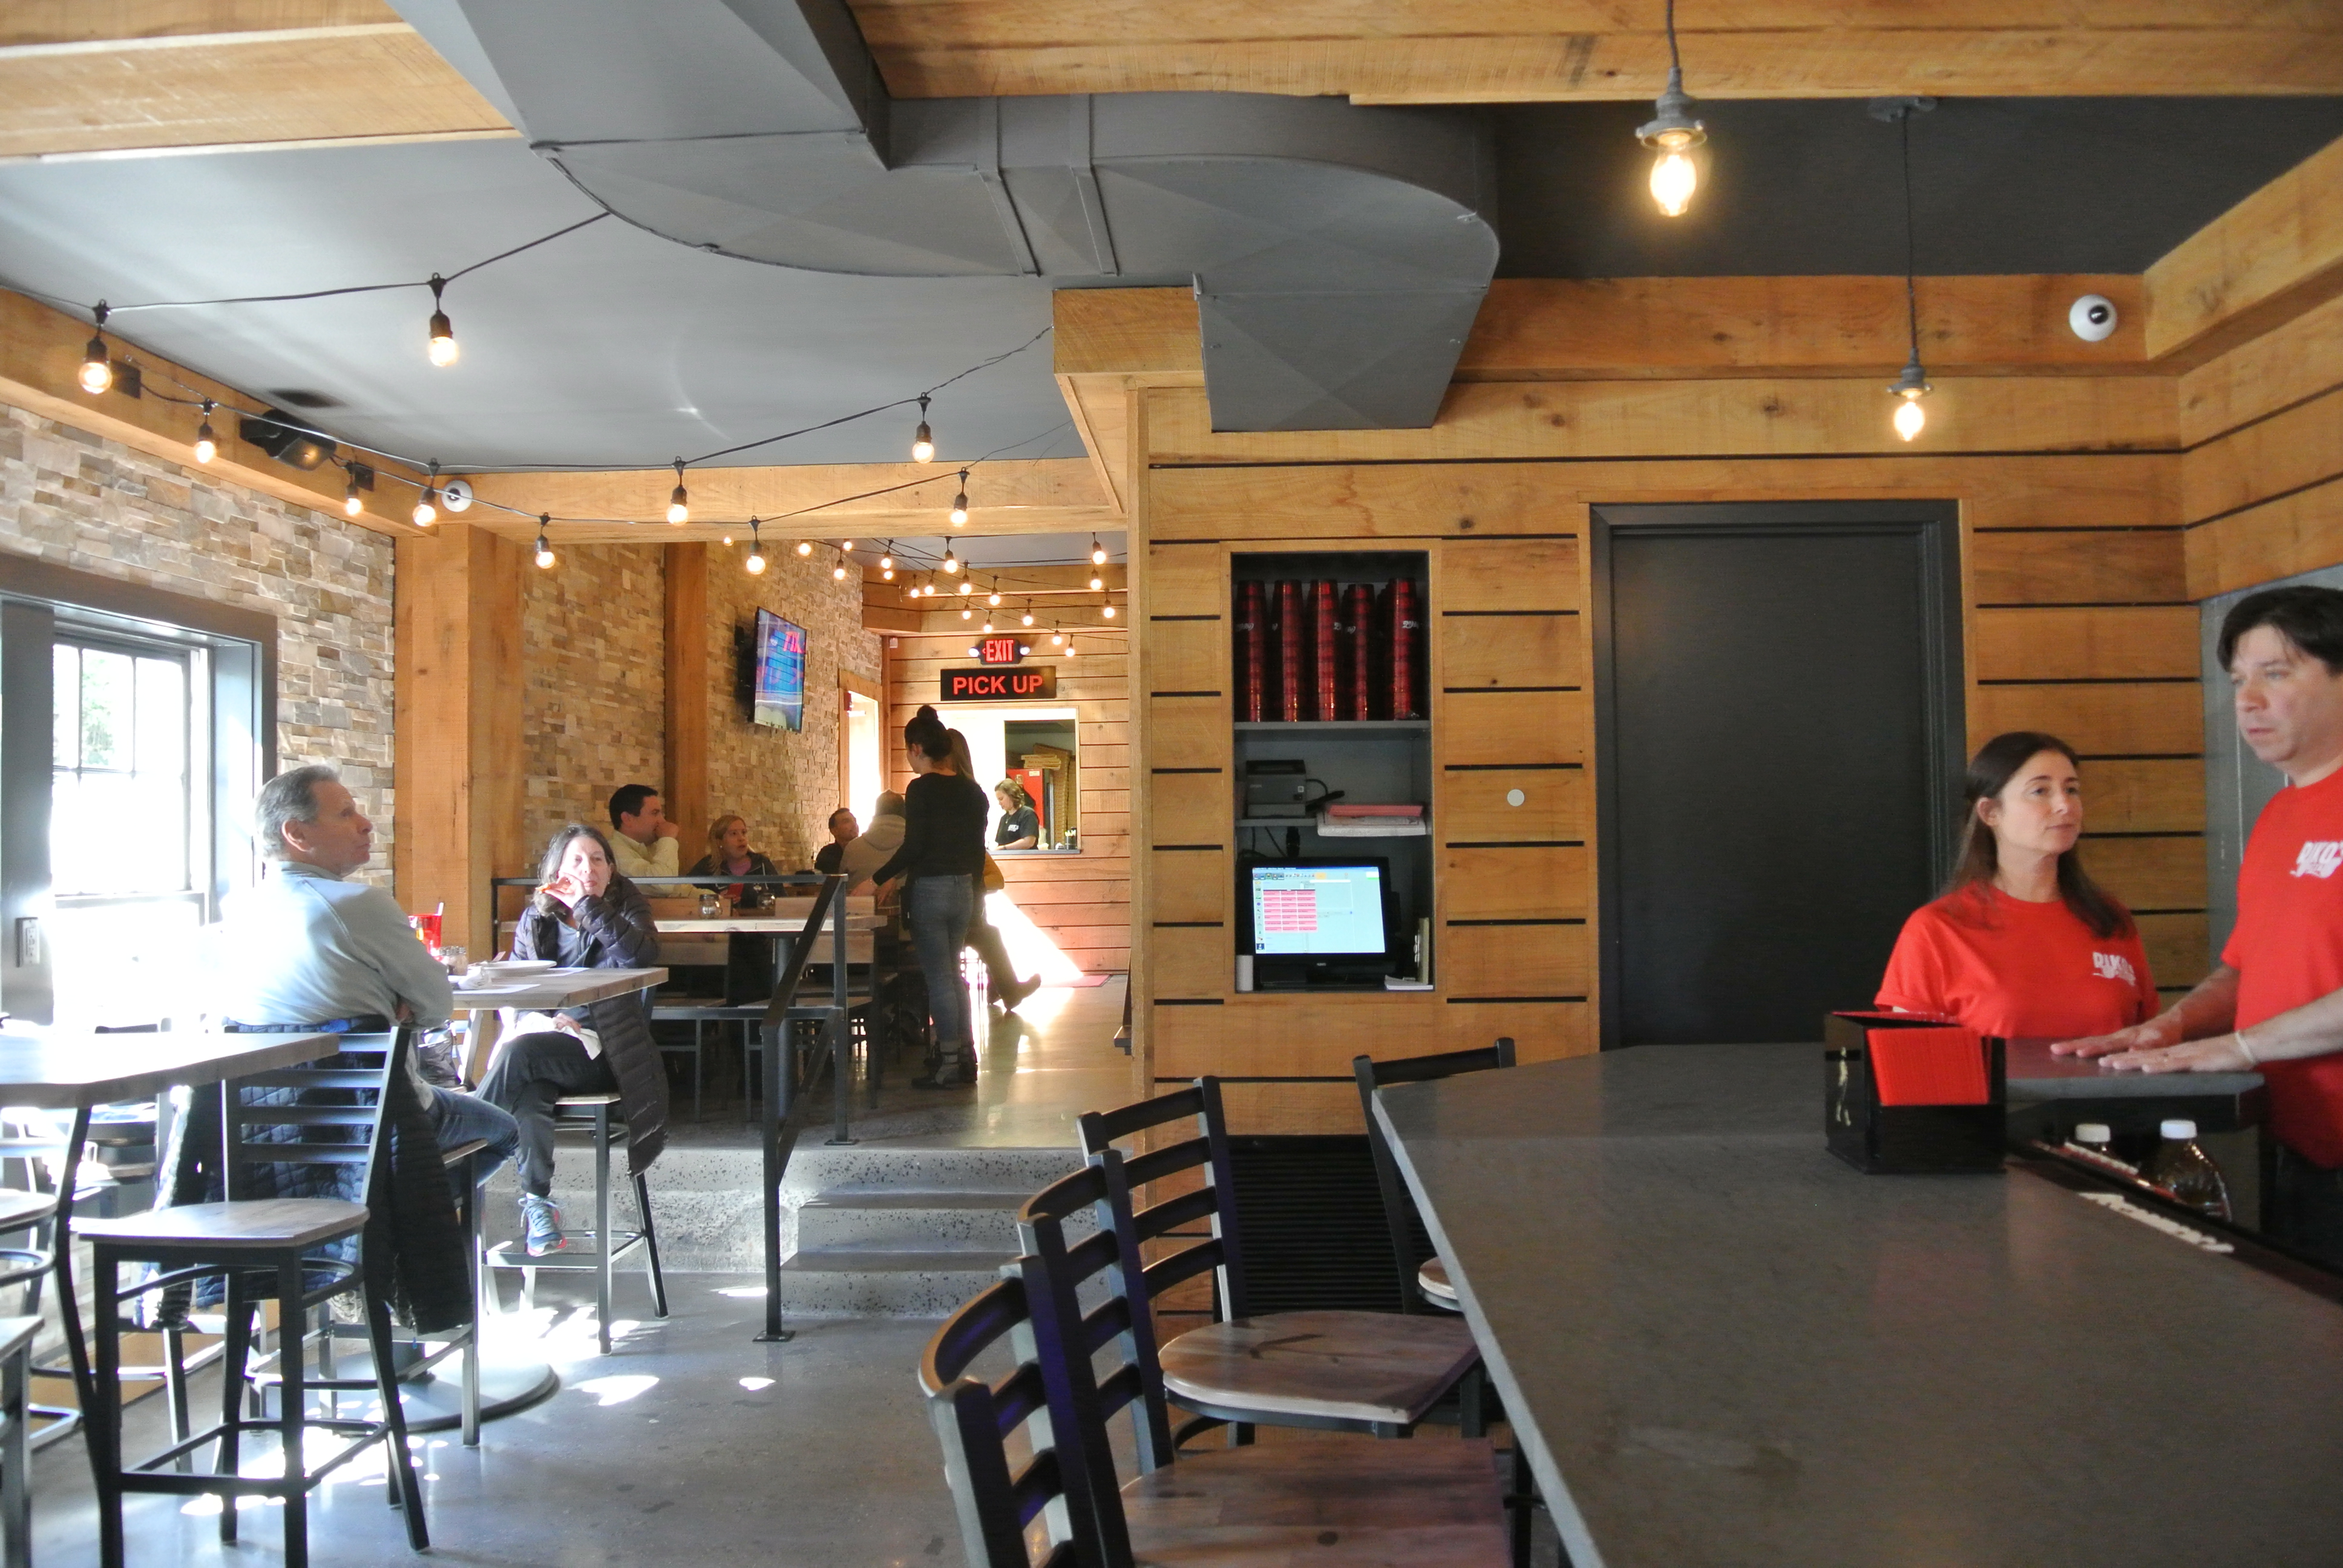 riko u0027s pizza opens new hope street spot with a bar omnomct